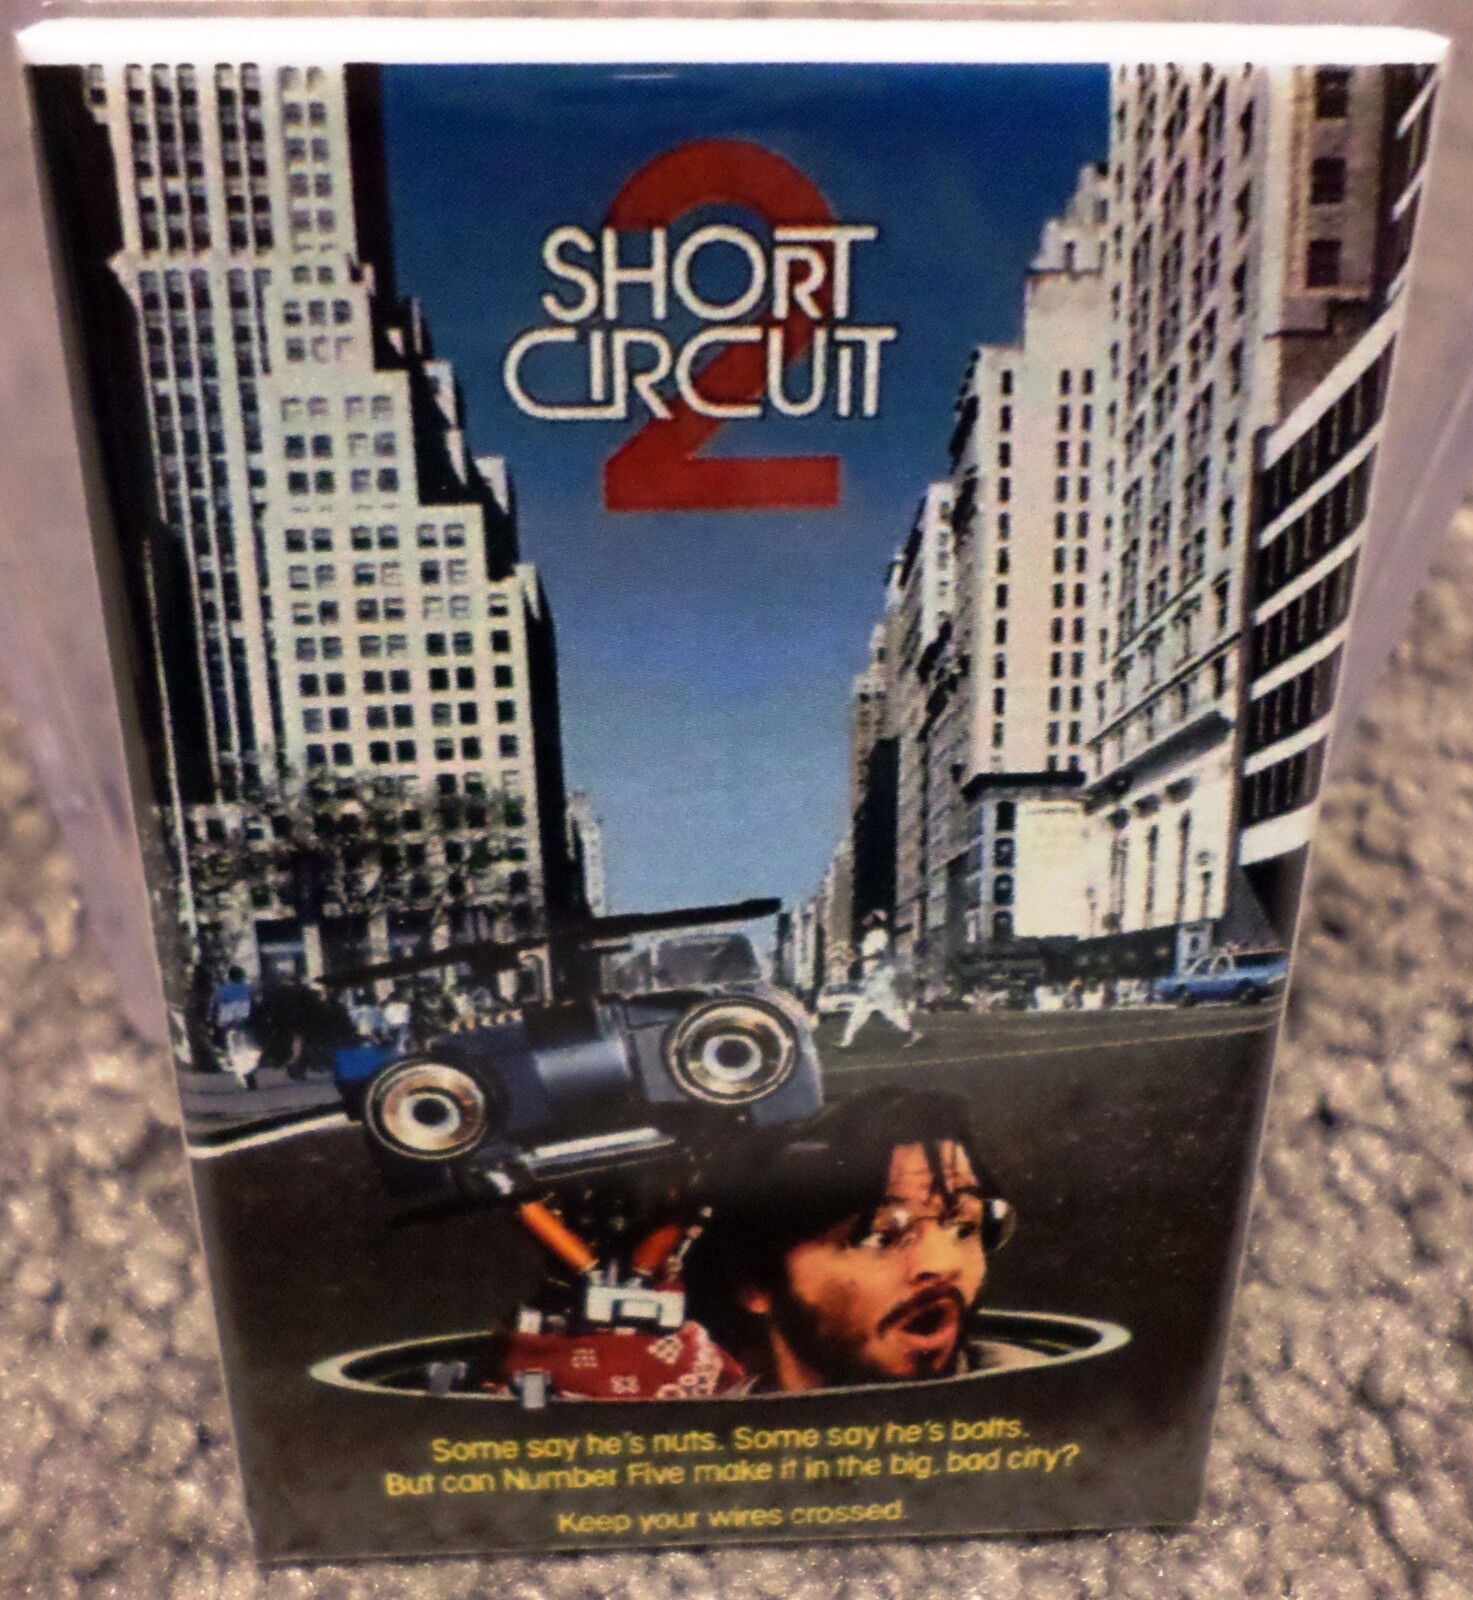 Short Circuit 2 Movie Poster X 3 Refrigerator Locker Magnet Shortcircuit2 1 Of 2only 5 Available